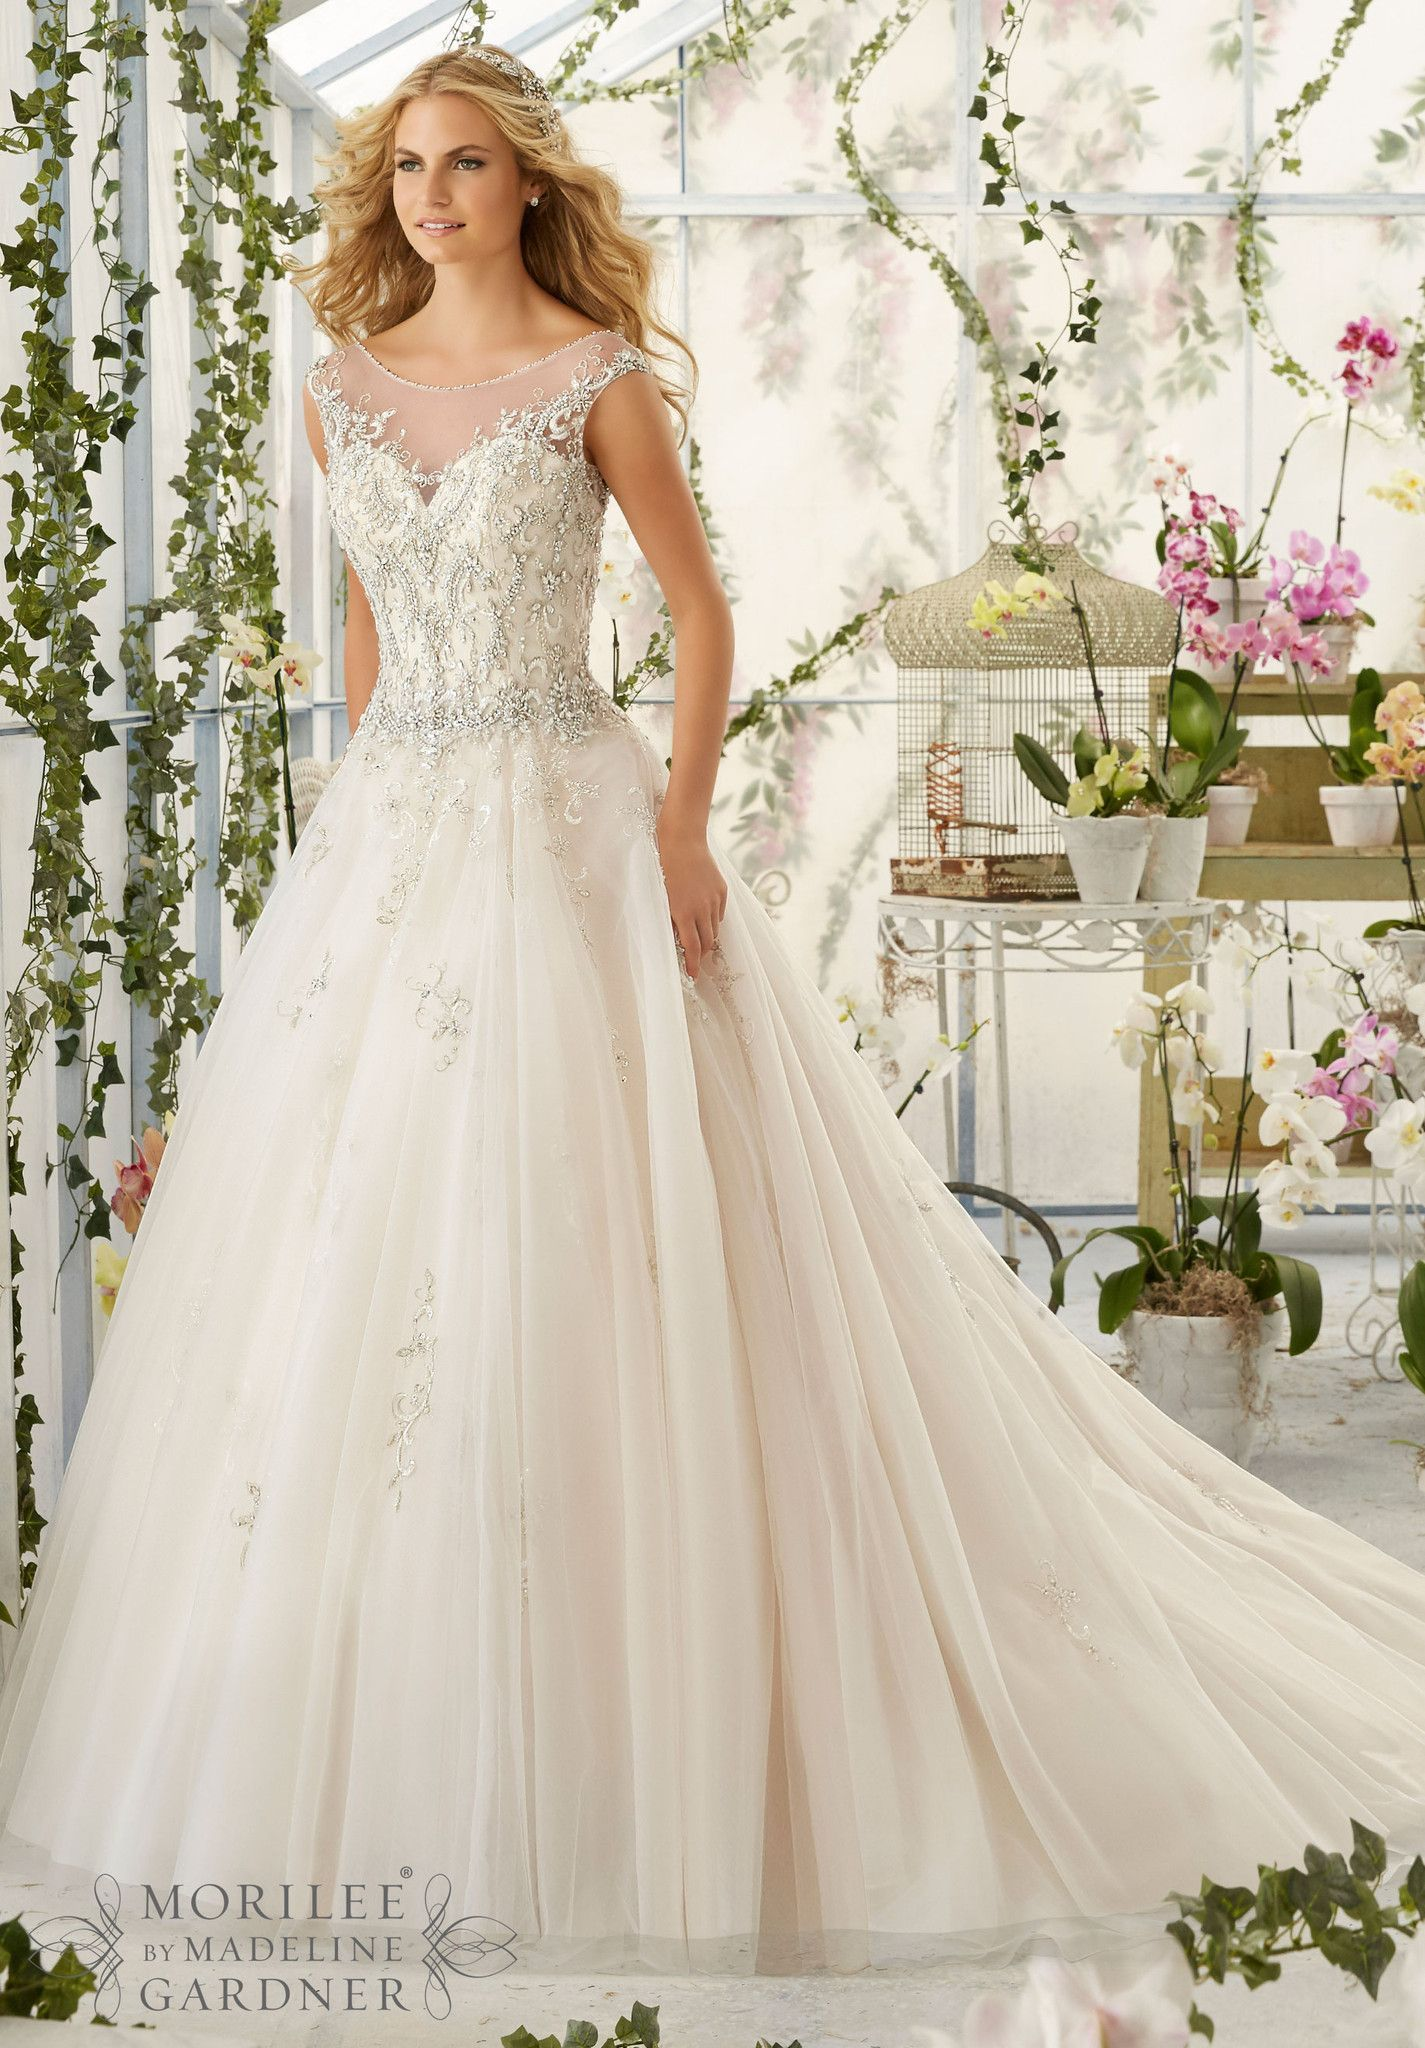 Mori Lee 2818 All Dressed Up Bridal Gown